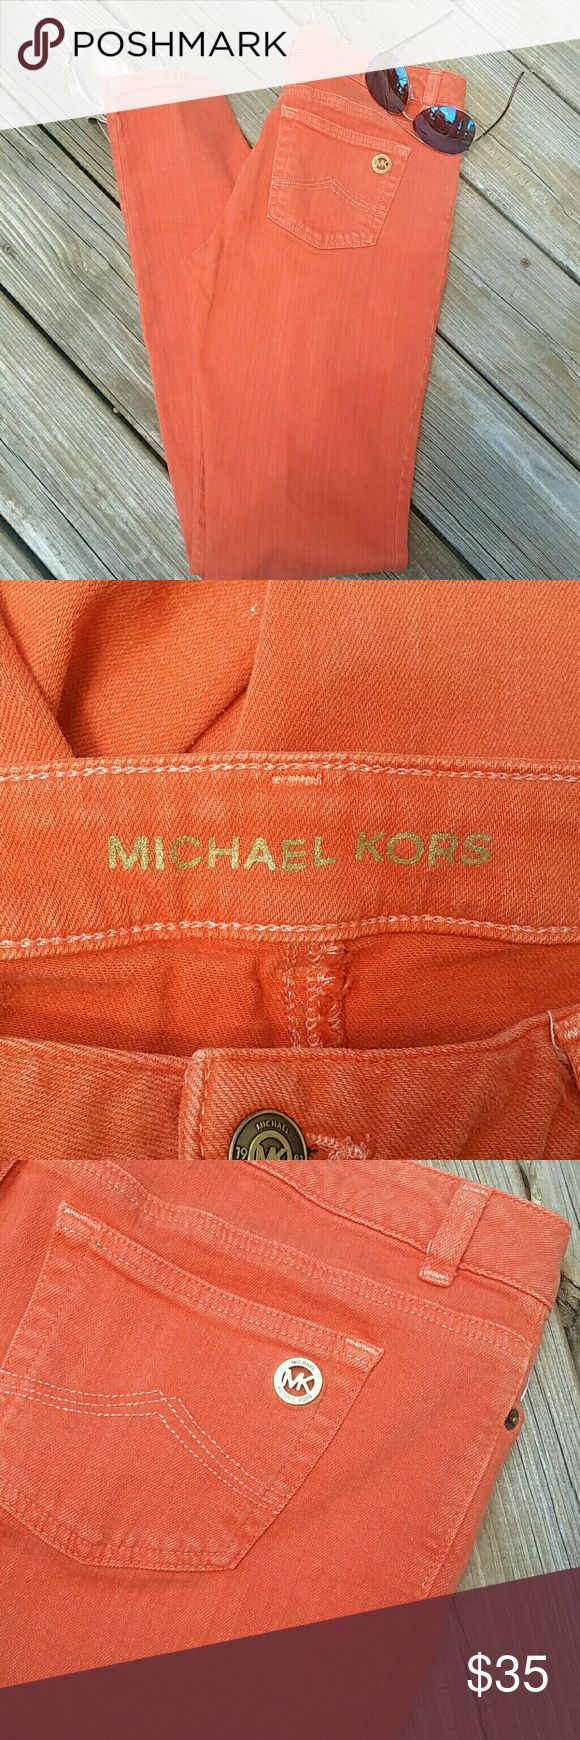 "Michael Kors Orange Skinny Jeans Size 6 Beautiful Pair Of Orange Michael Kors Skinny Jeans Size 6 Stretch Measurements Taken Lying Flat Waist 16"" Rise 8"" Inseam 31"" Leg Opening 5.5"" Gently Used, No Flaws Michael Kors Jeans Skinny"